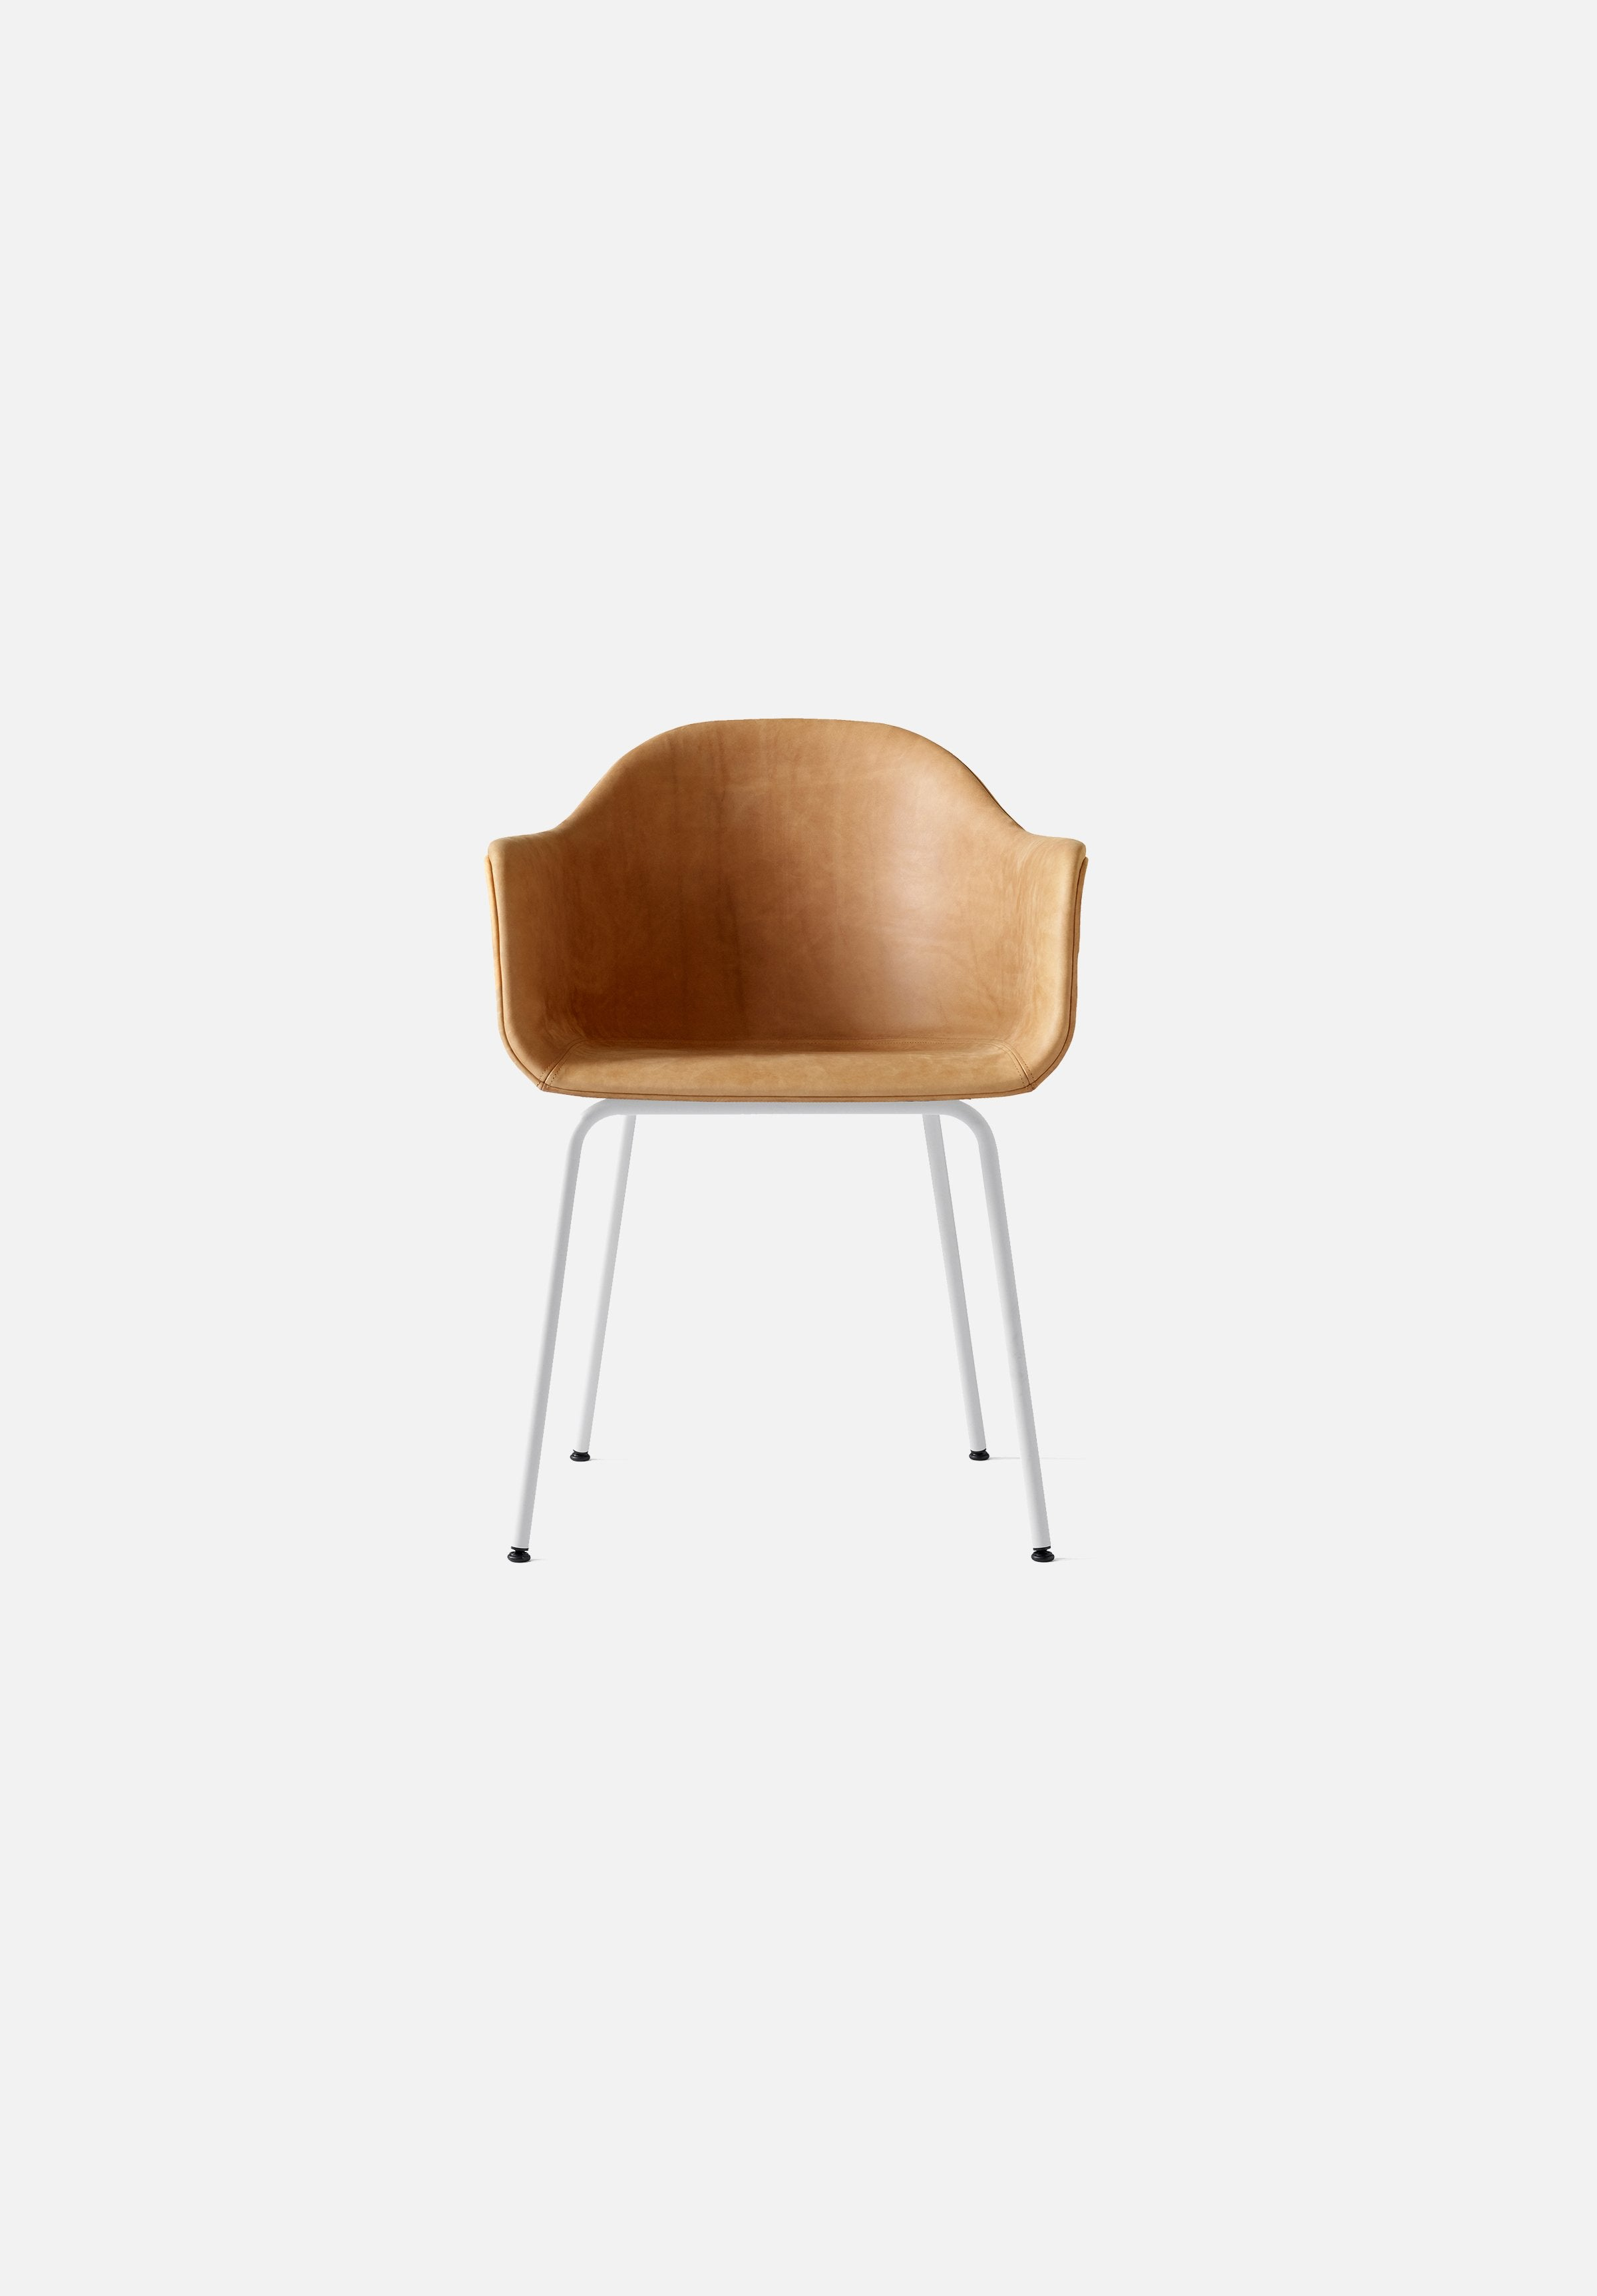 Harbour Chair - Steel Base-Norm Architects-Menu-cognac_leather-White Steel-danish-interior-furniture-denmark-Average-design-toronto-canada